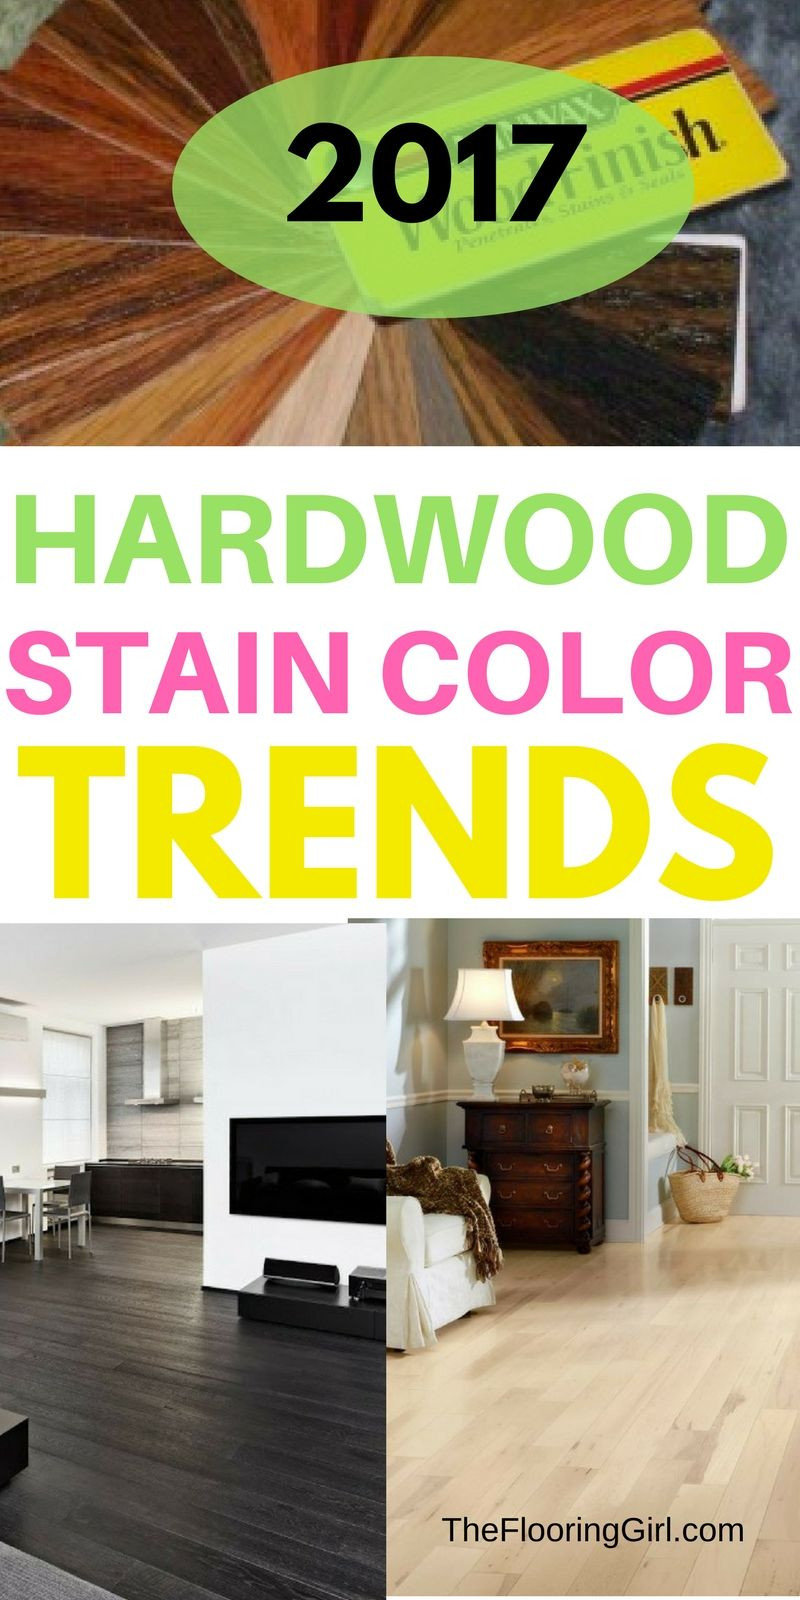 discount hardwood floors molding california of hardwood flooring stain color trends 2018 more from the flooring inside hardwood flooring stain color trends for 2017 hardwood colors that are in style theflooringgirl com